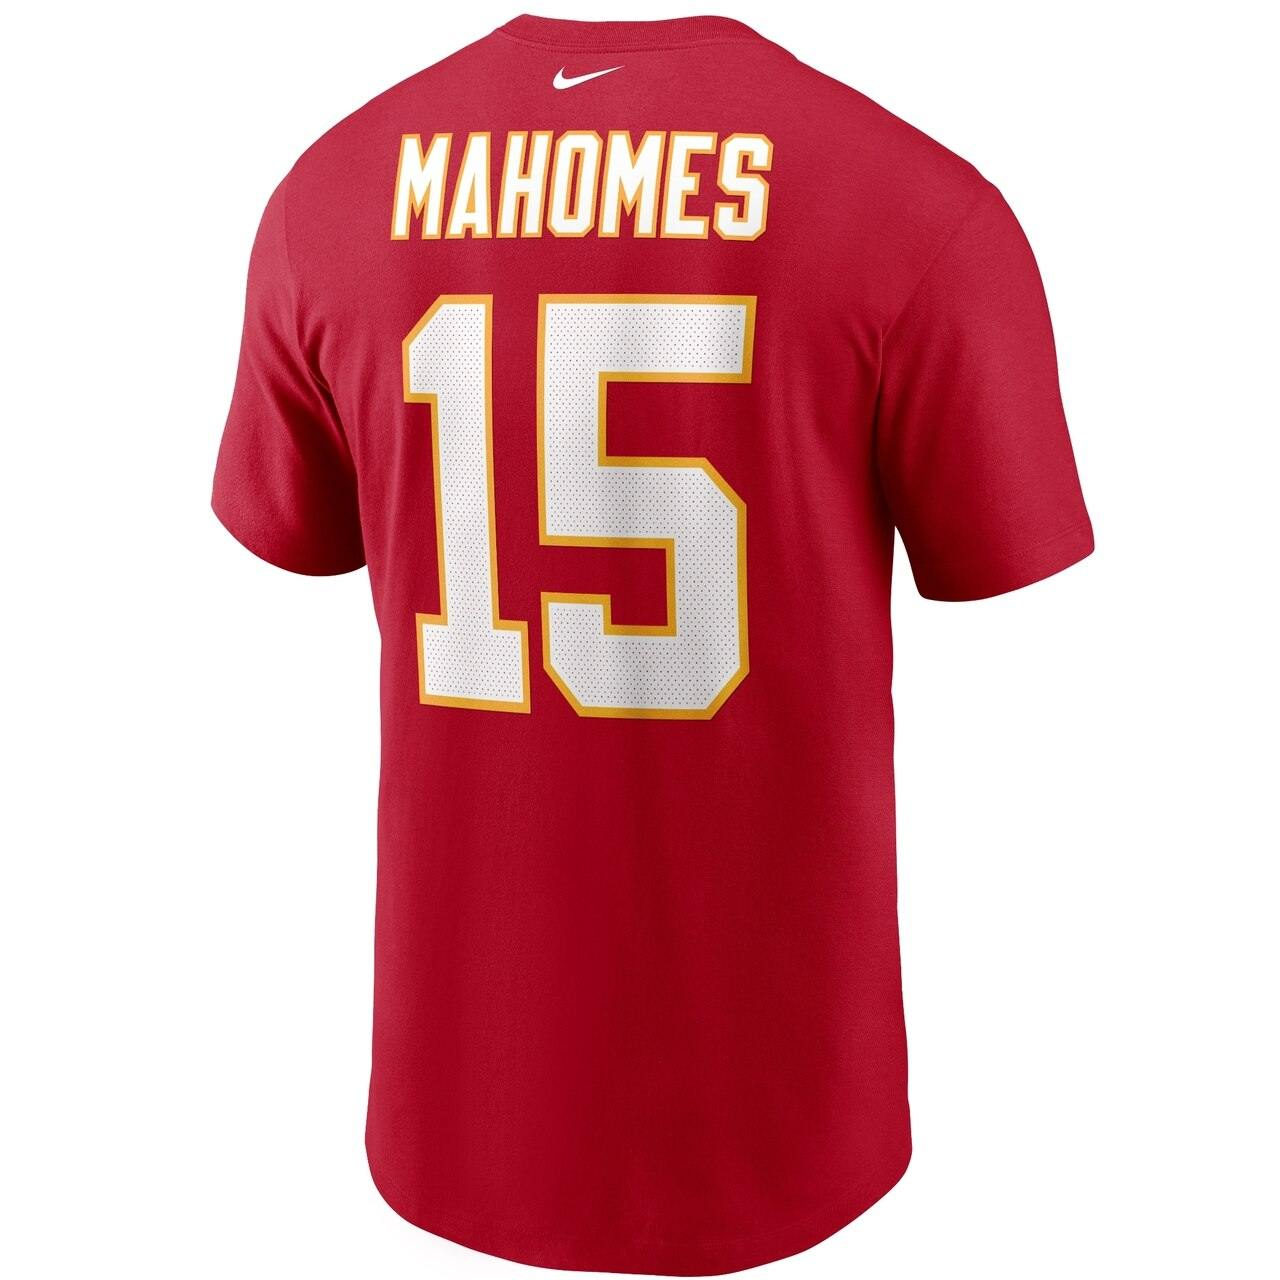 Nike Kansas City Chiefs Patrick Mahomes Name and Number póló